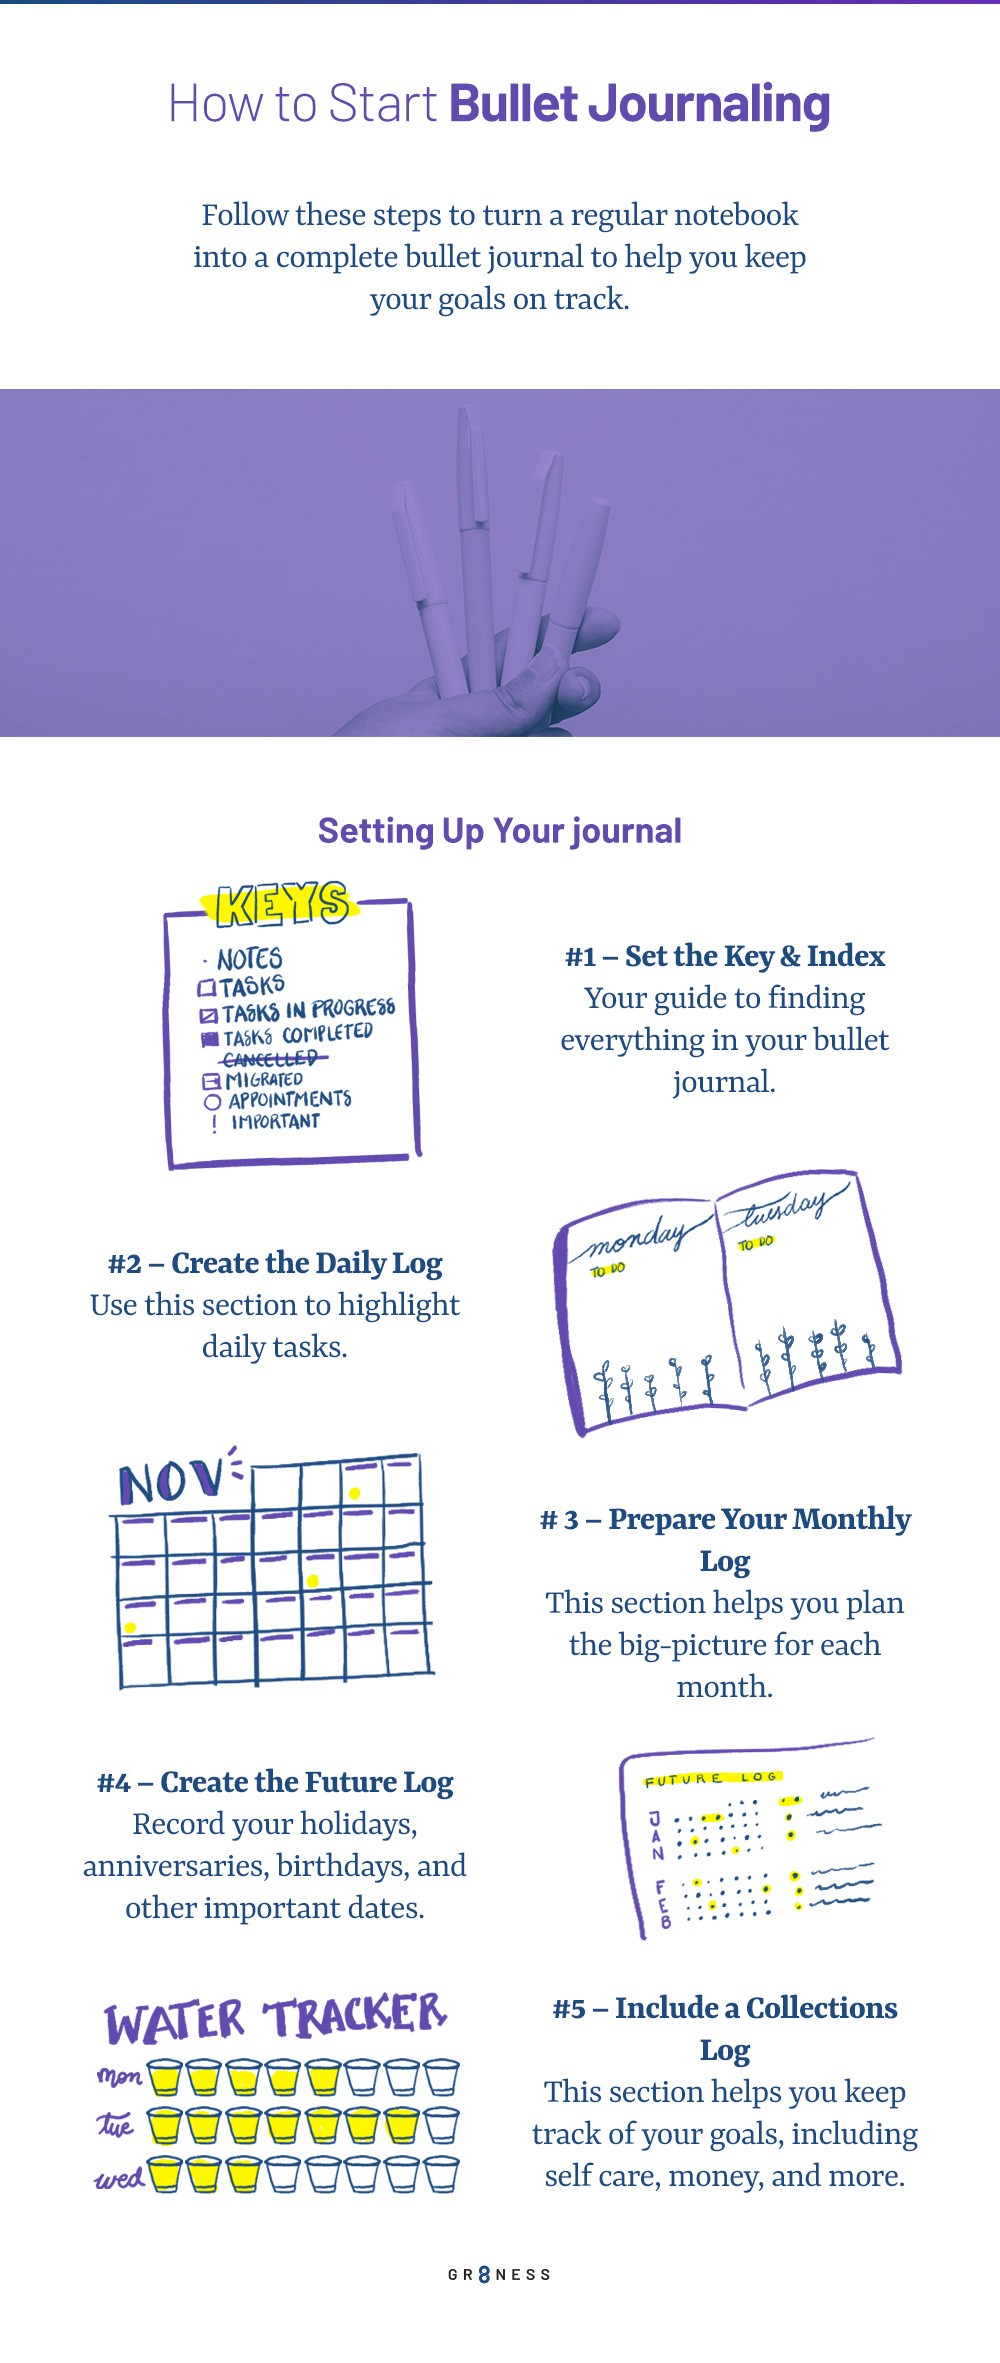 A step by step guide for learning to start Bullet Journaling